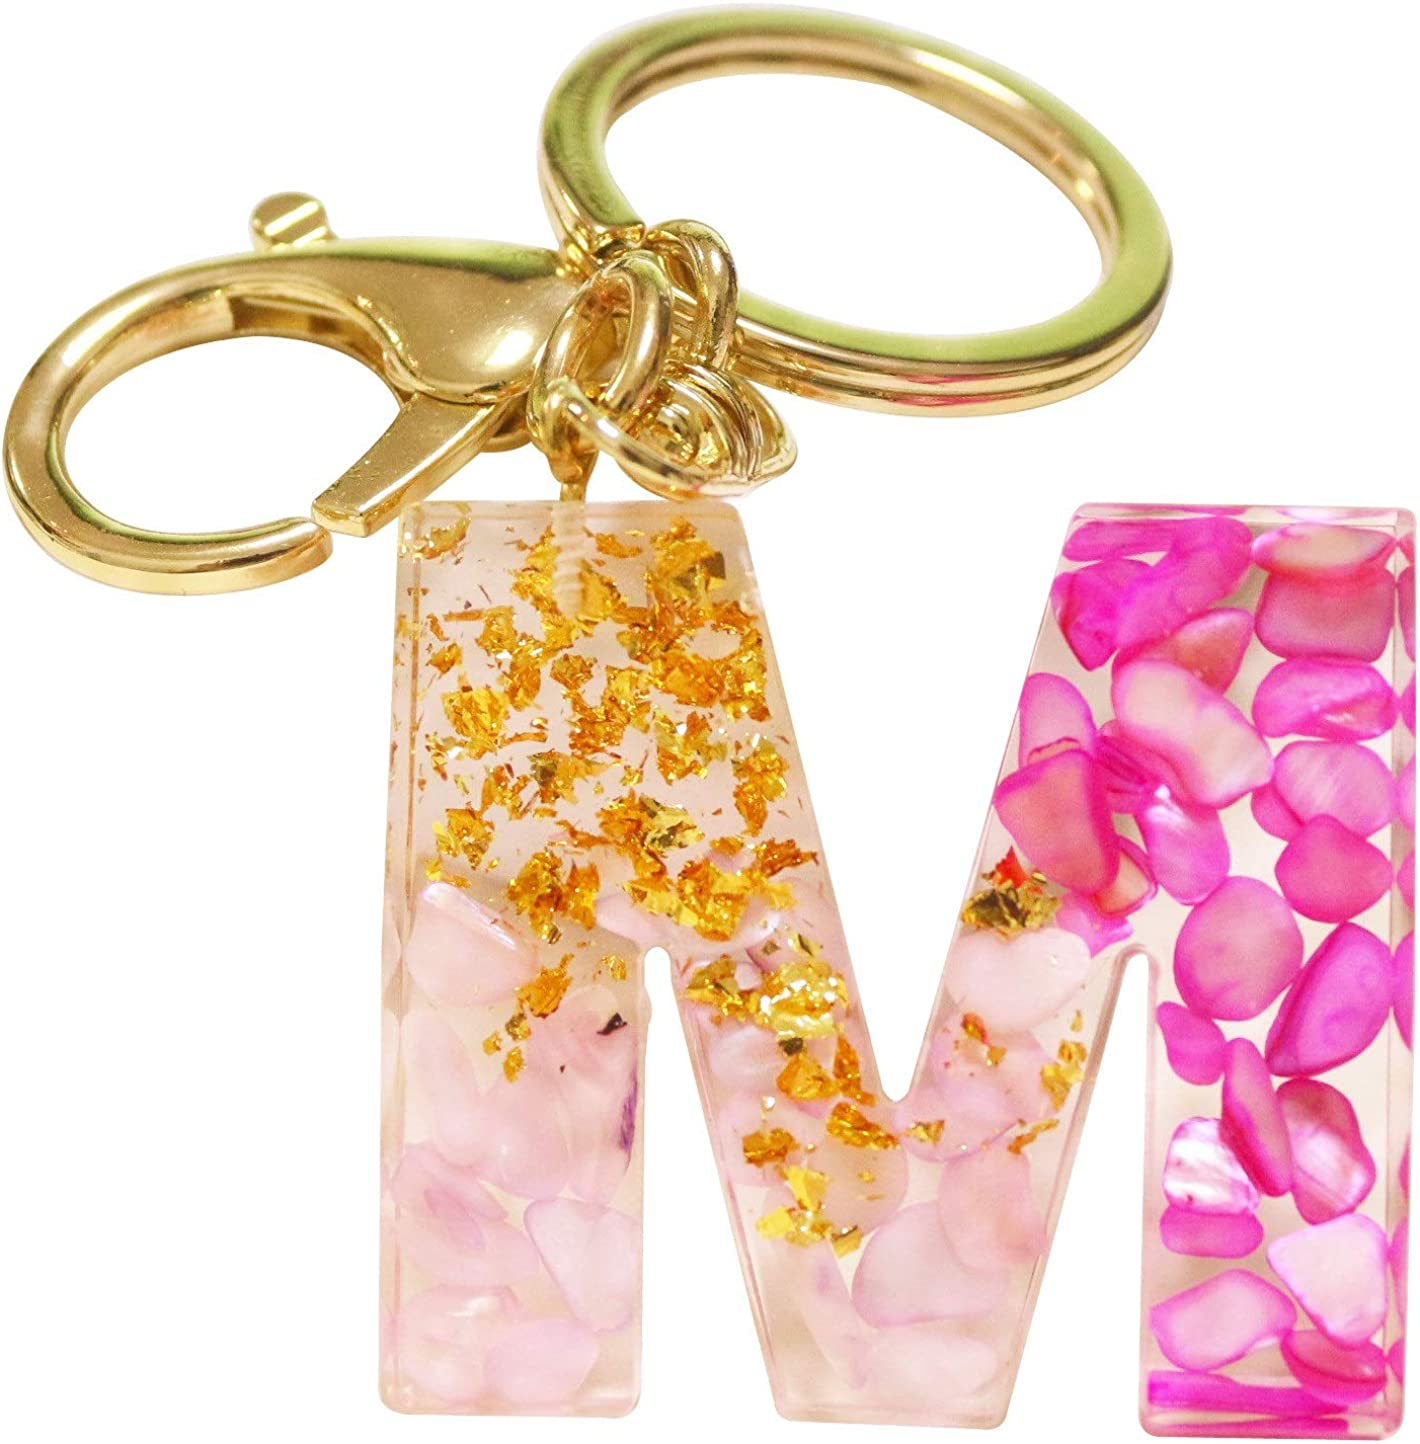 keychain with name rose gold name keychain custom keychain Personlized keychain personalized keychain initial keychain monogram decal